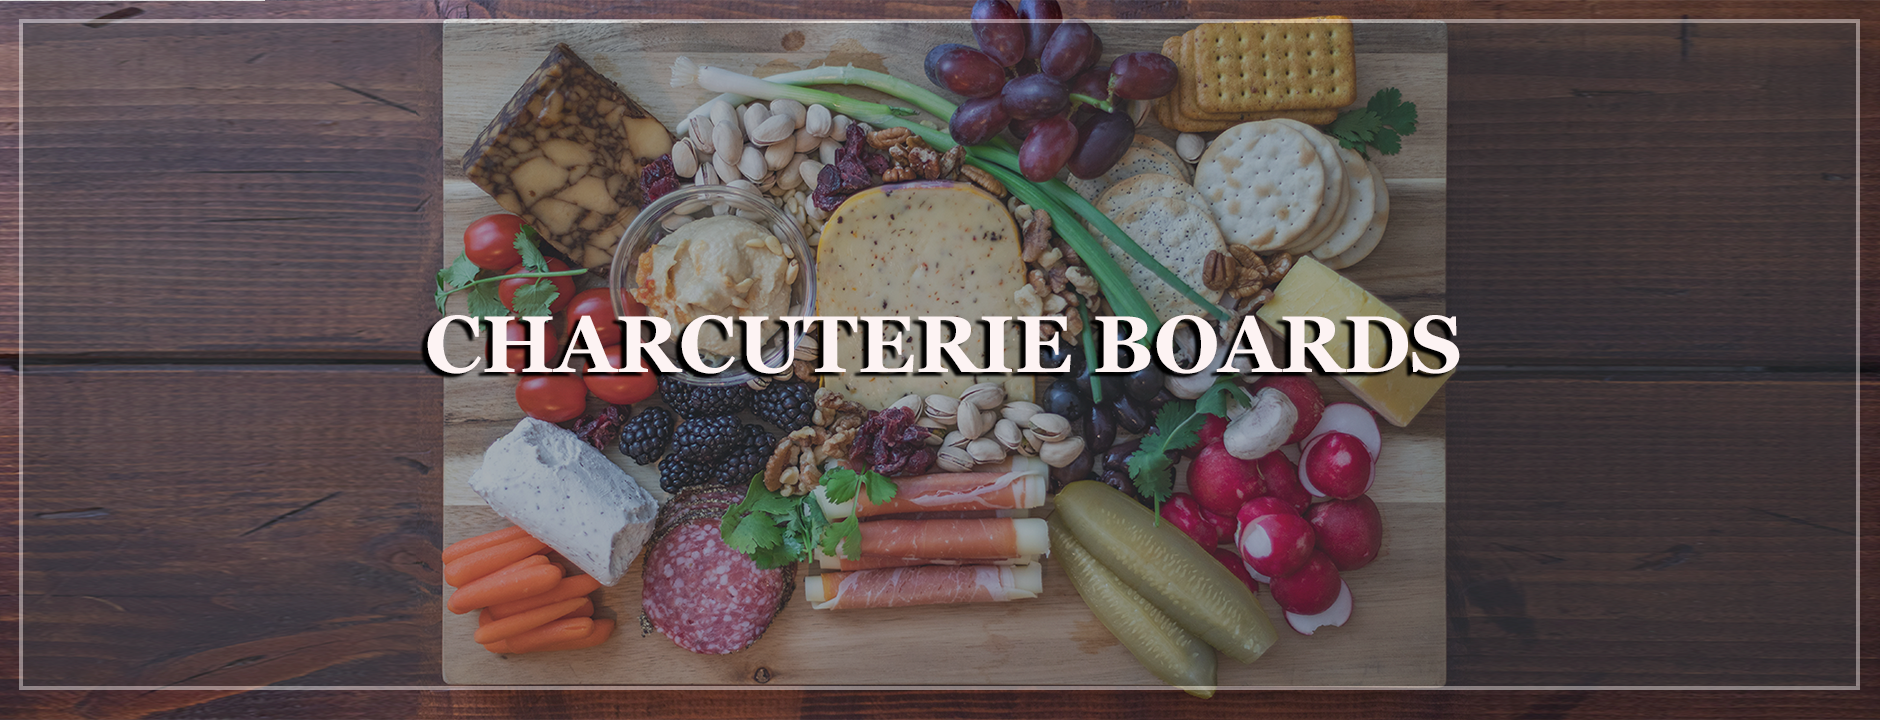 Charcuterie Boards - Wine Is Life Store